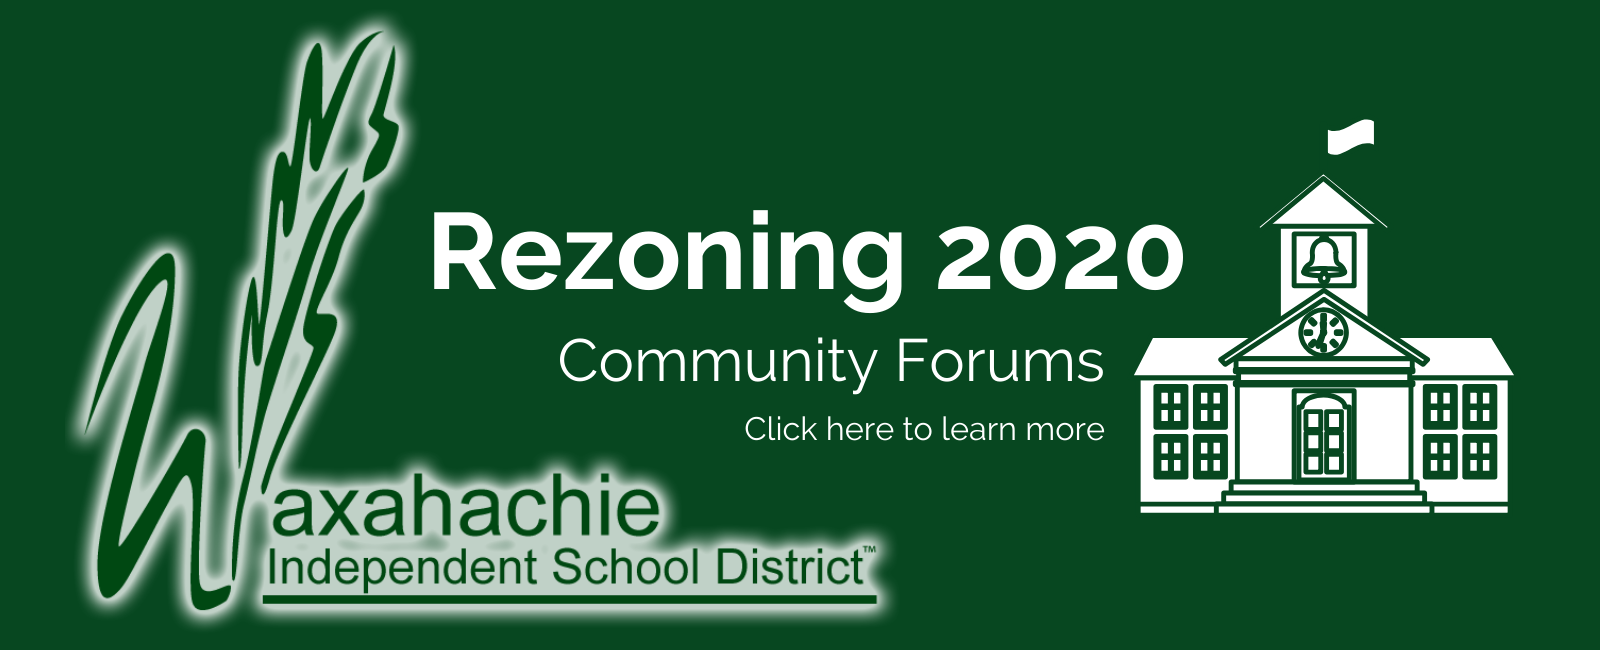 Click here to learn more about Rezoning 2020 Community Forums